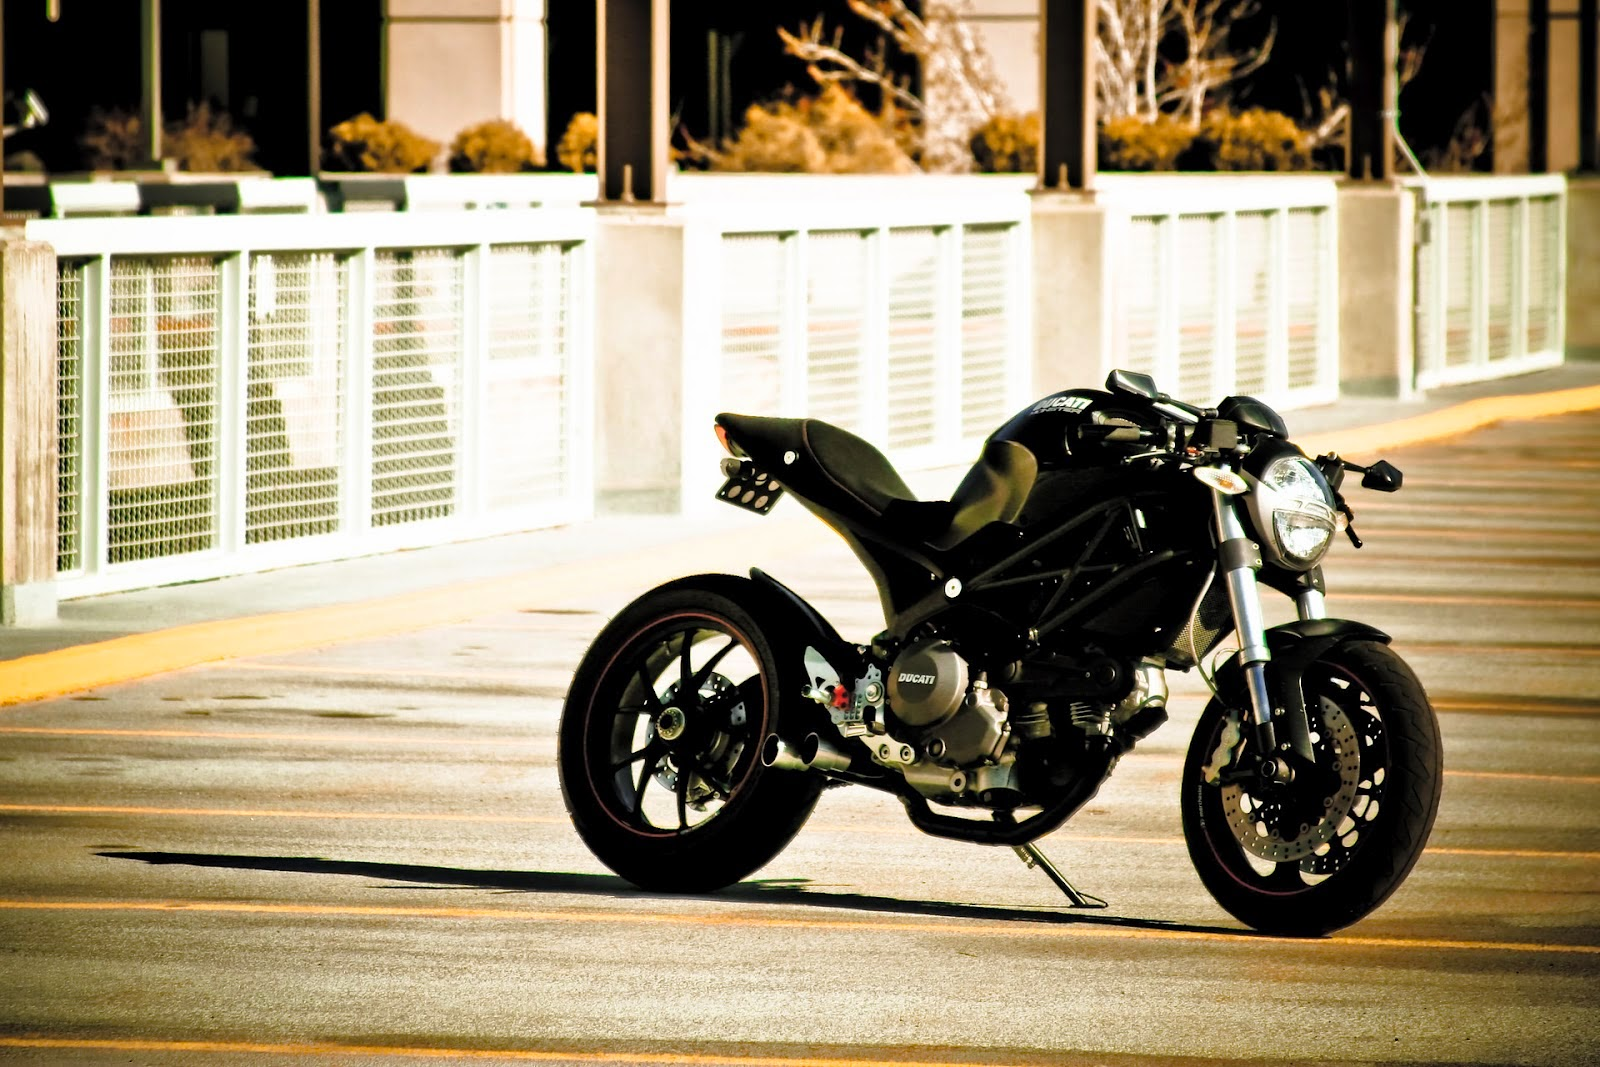 Ducati Monster Cafe Racer Conversion